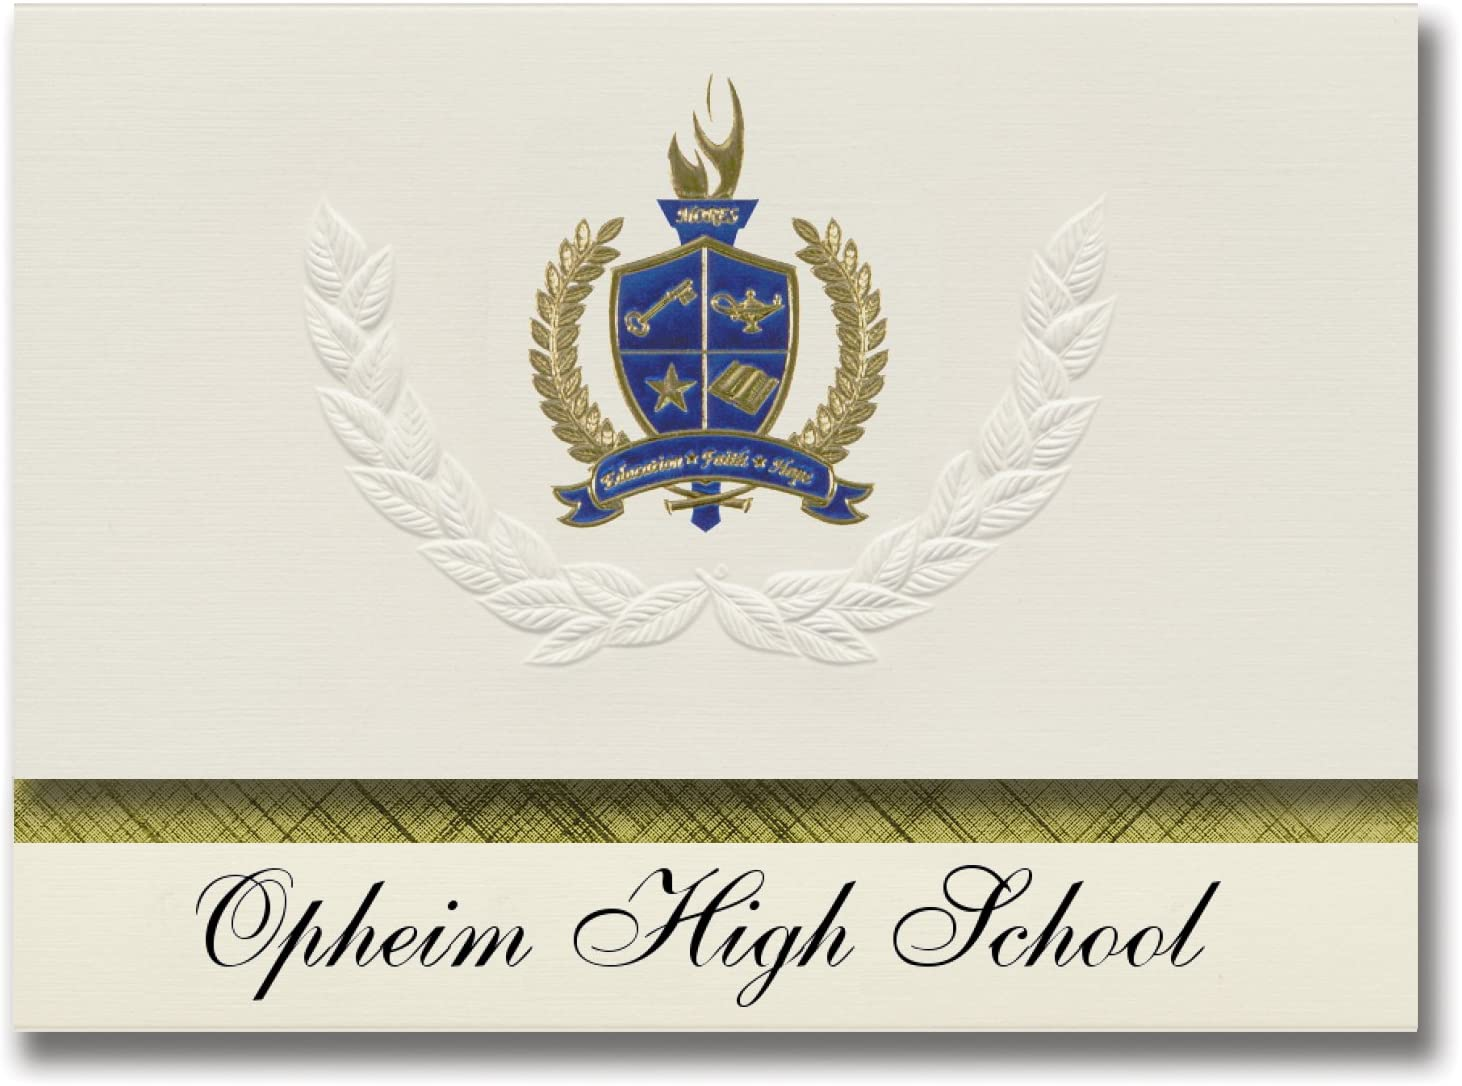 Signature Announcements Opheim High School (Opheim, MT) Graduation Announcements, Presidential style, Elite package of 25 with Gold & Blue Metallic Foil seal